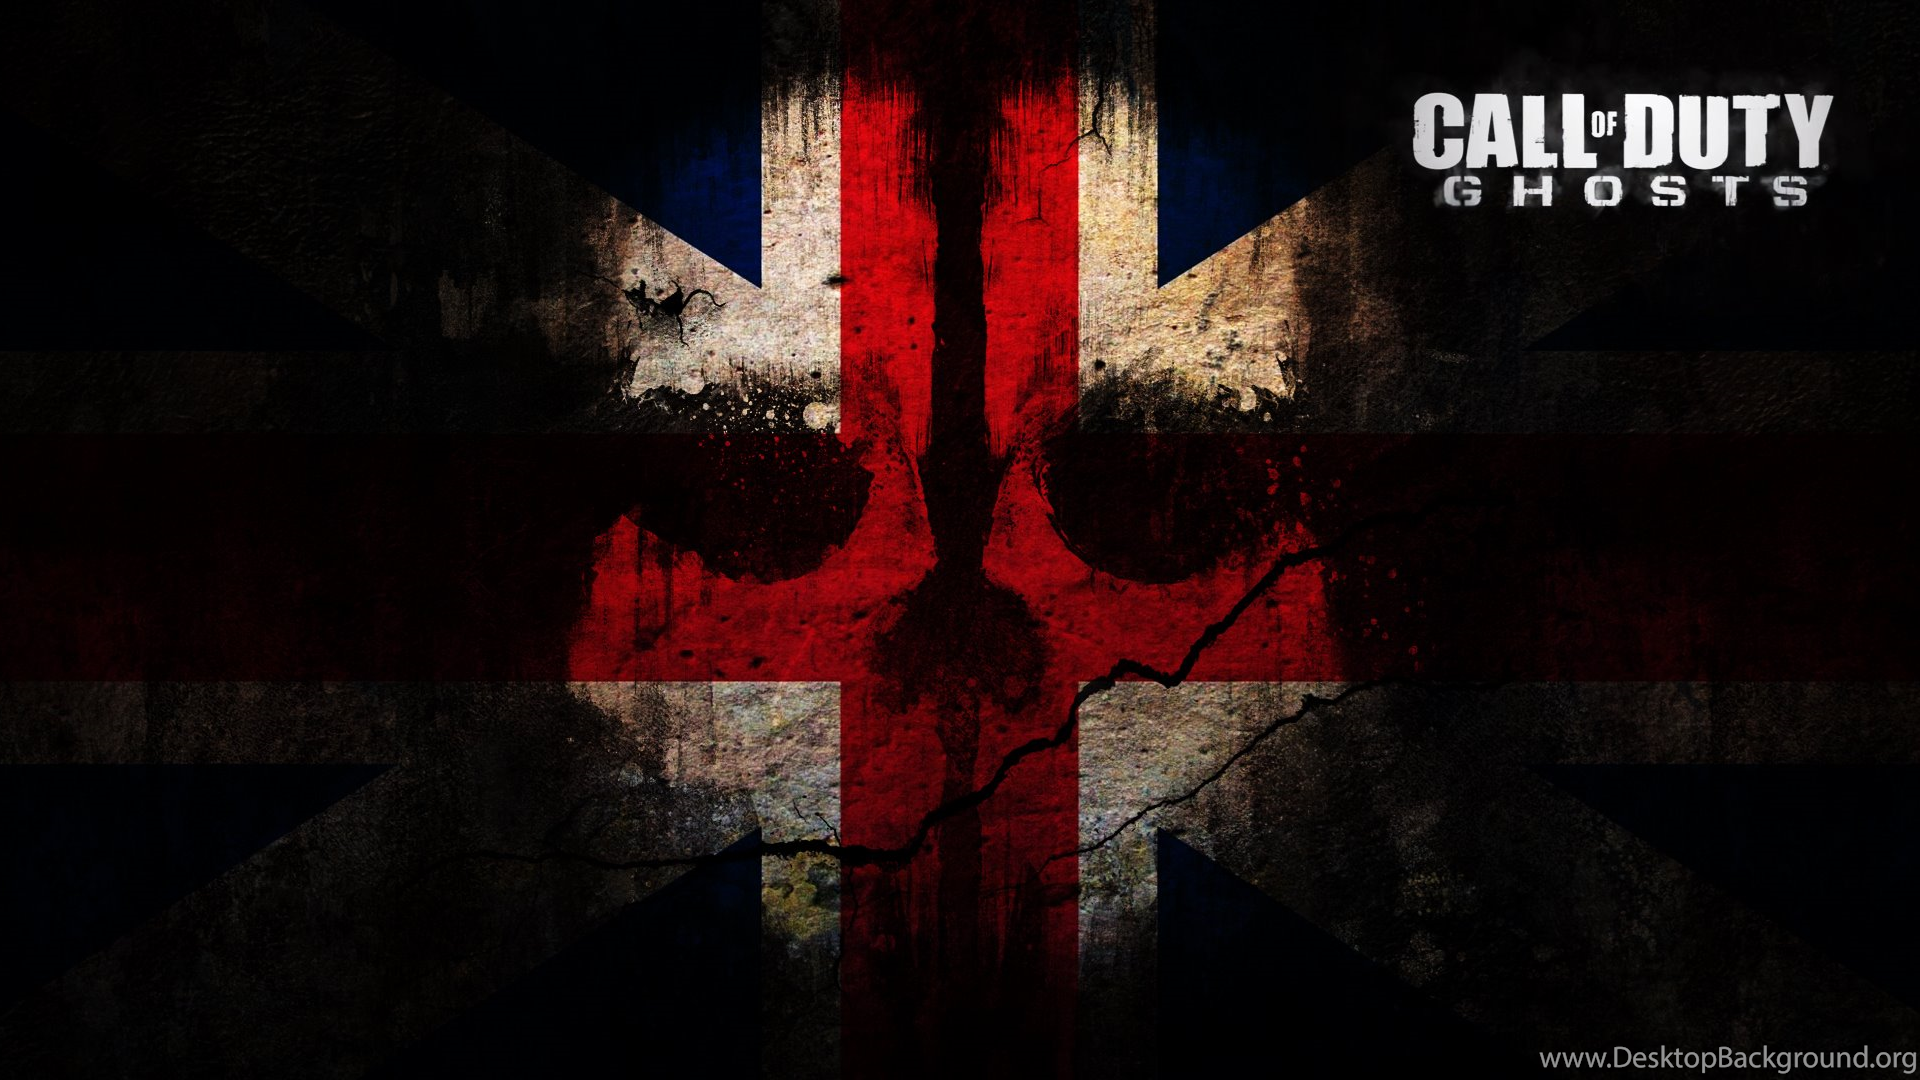 Call Of Duty Ghosts Game Wallpapers 1080p Desktop Background